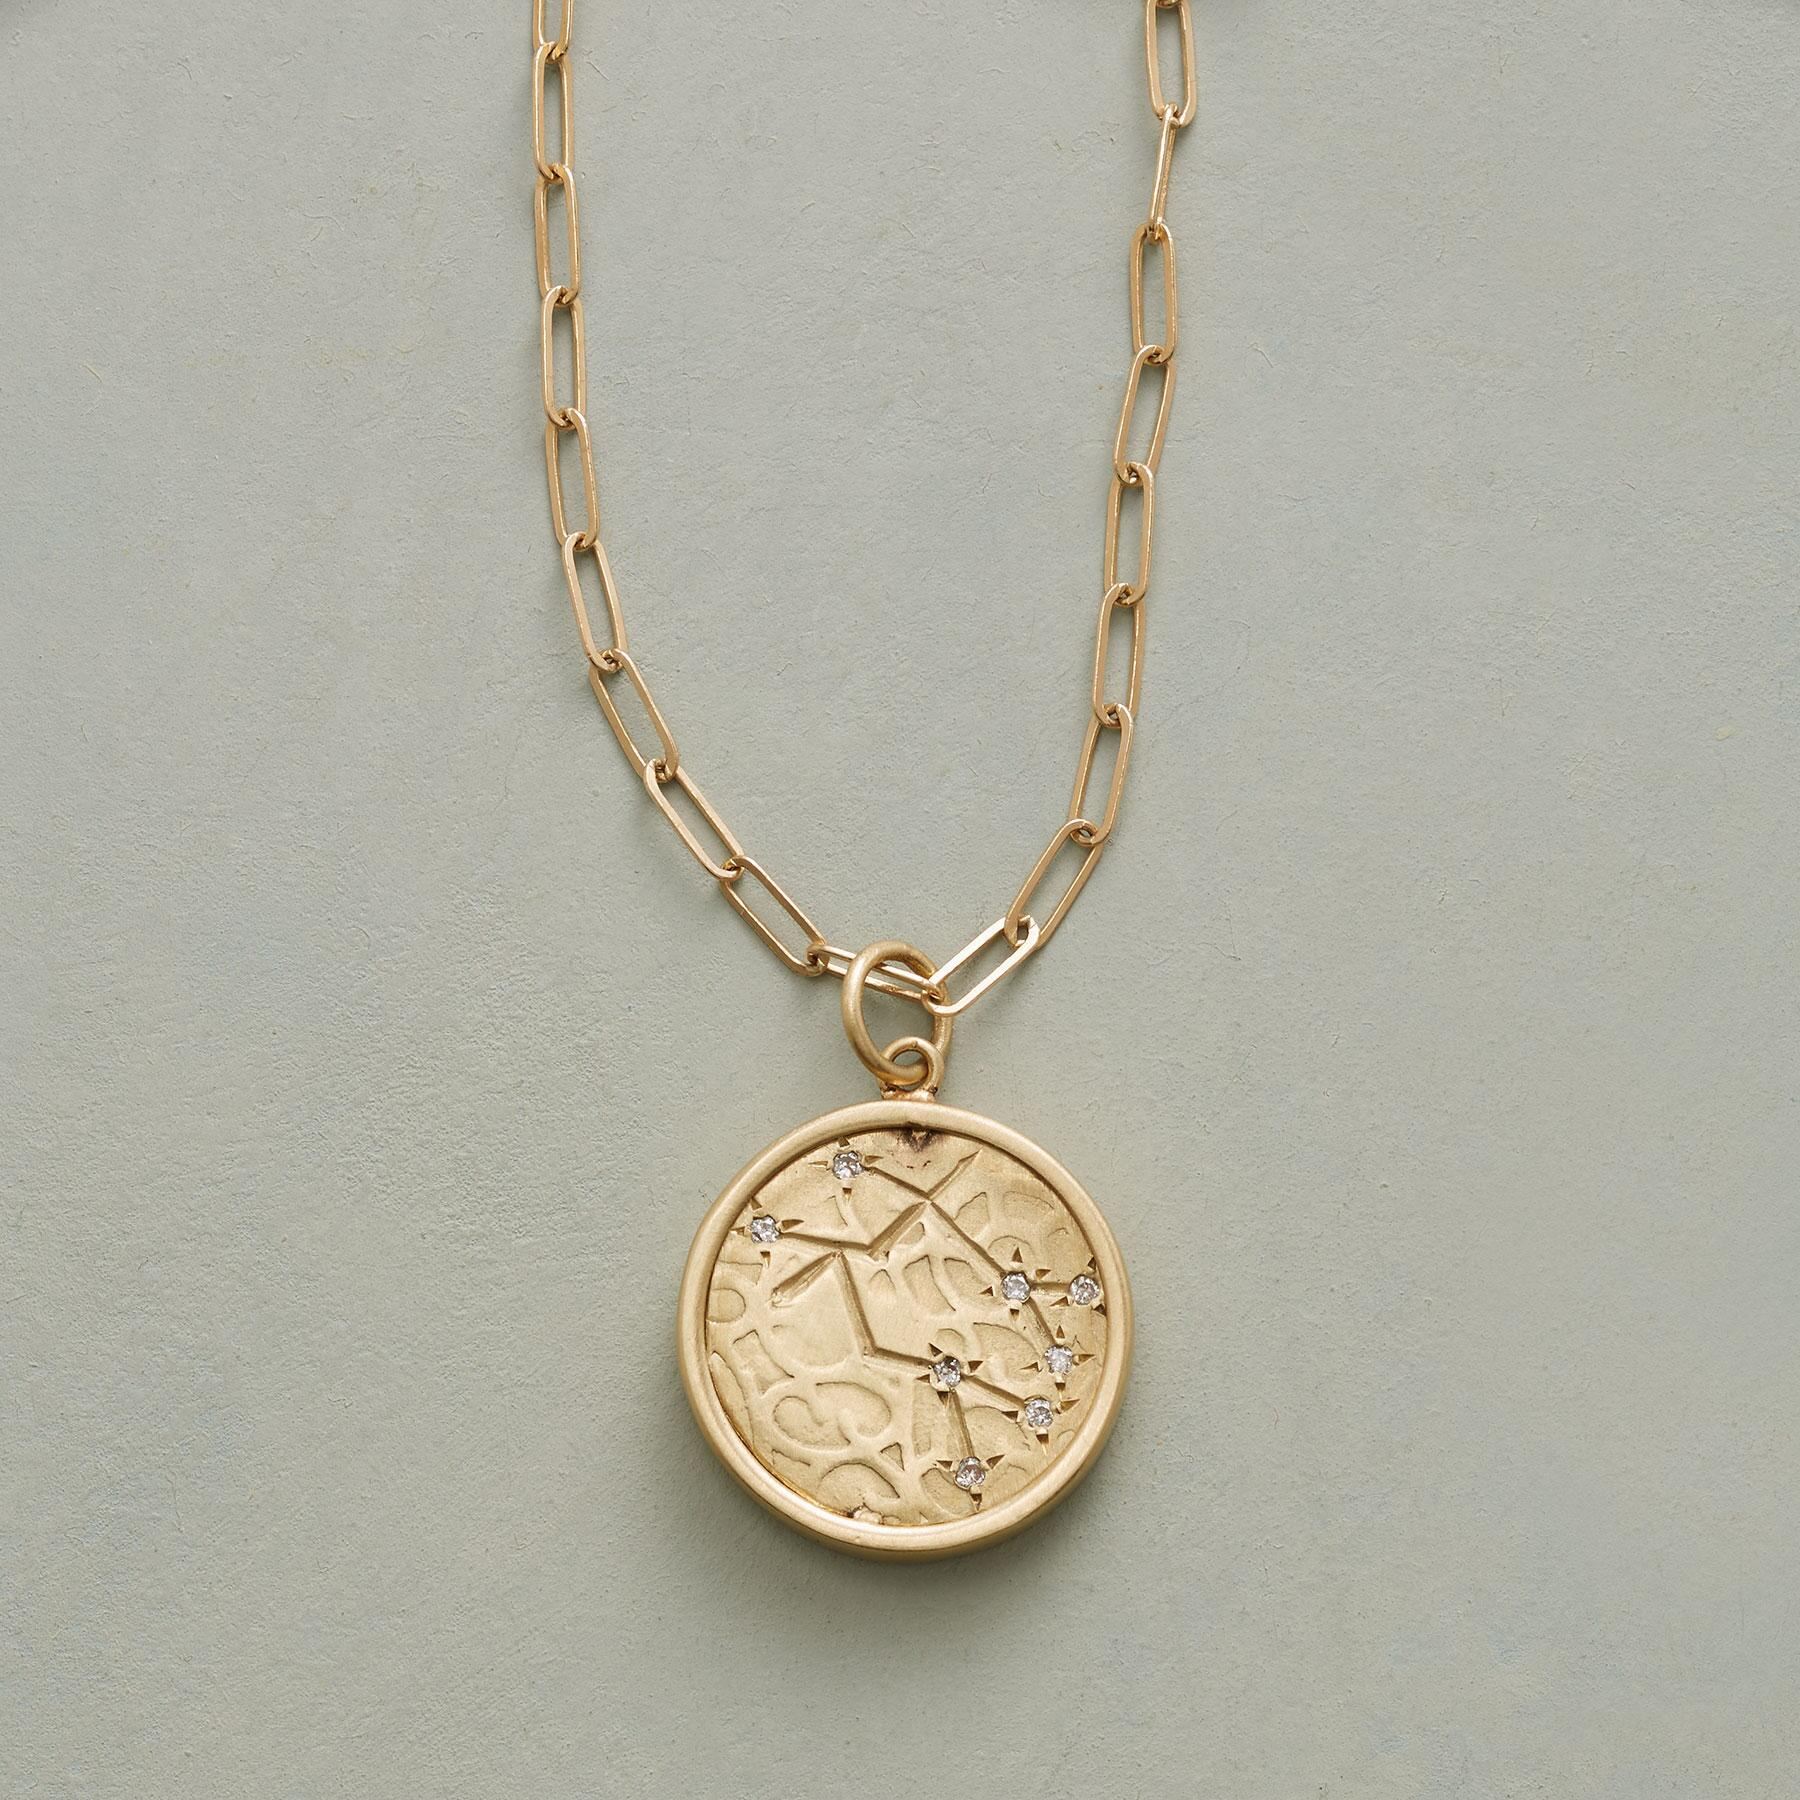 BIRTHDAY ZODIAC NECKLACE: View 4